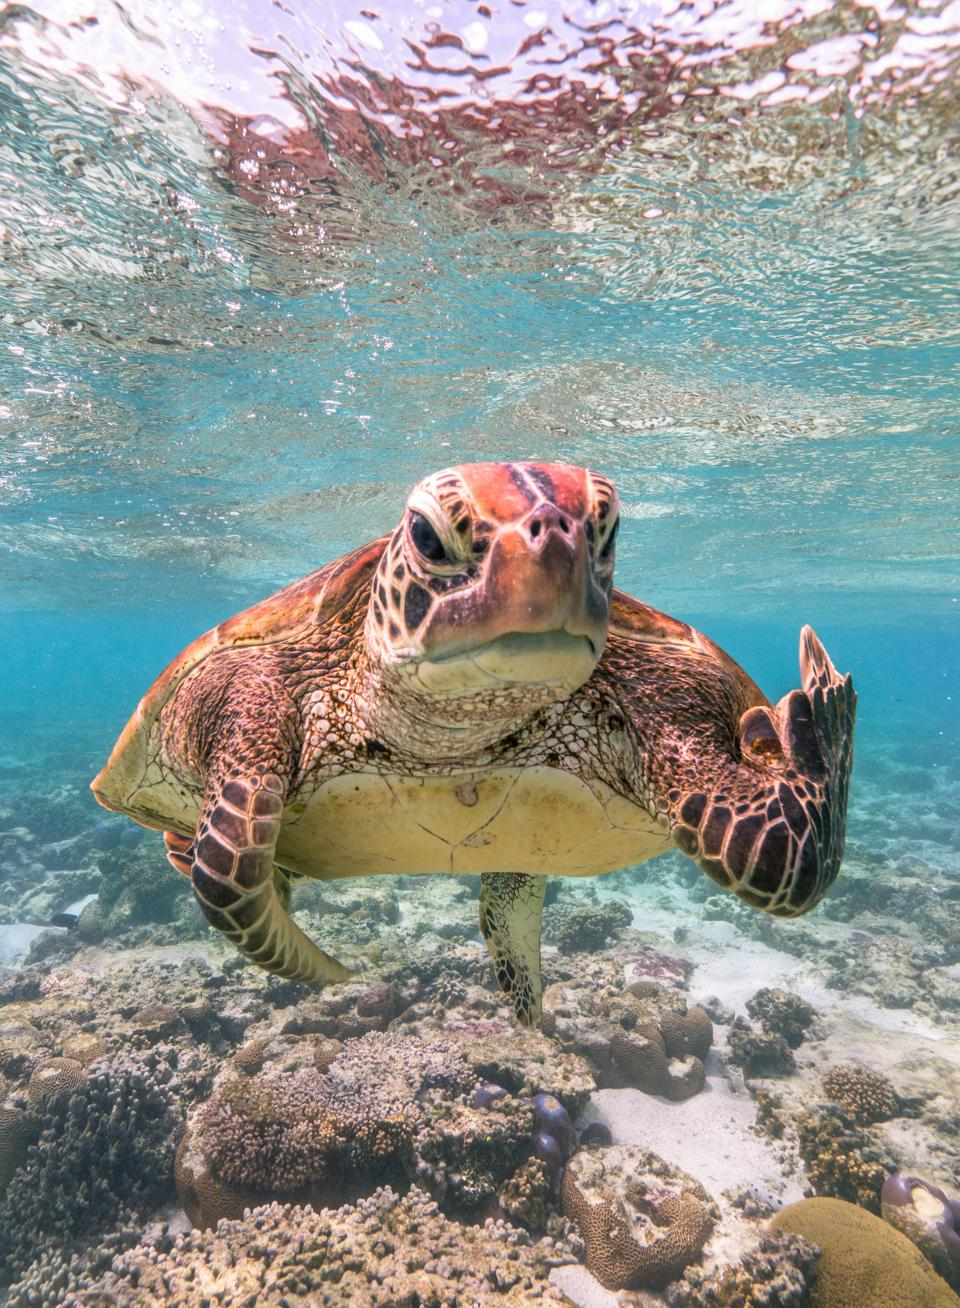 Comedy Wildlife Photo Awards: turtle showing the finger.